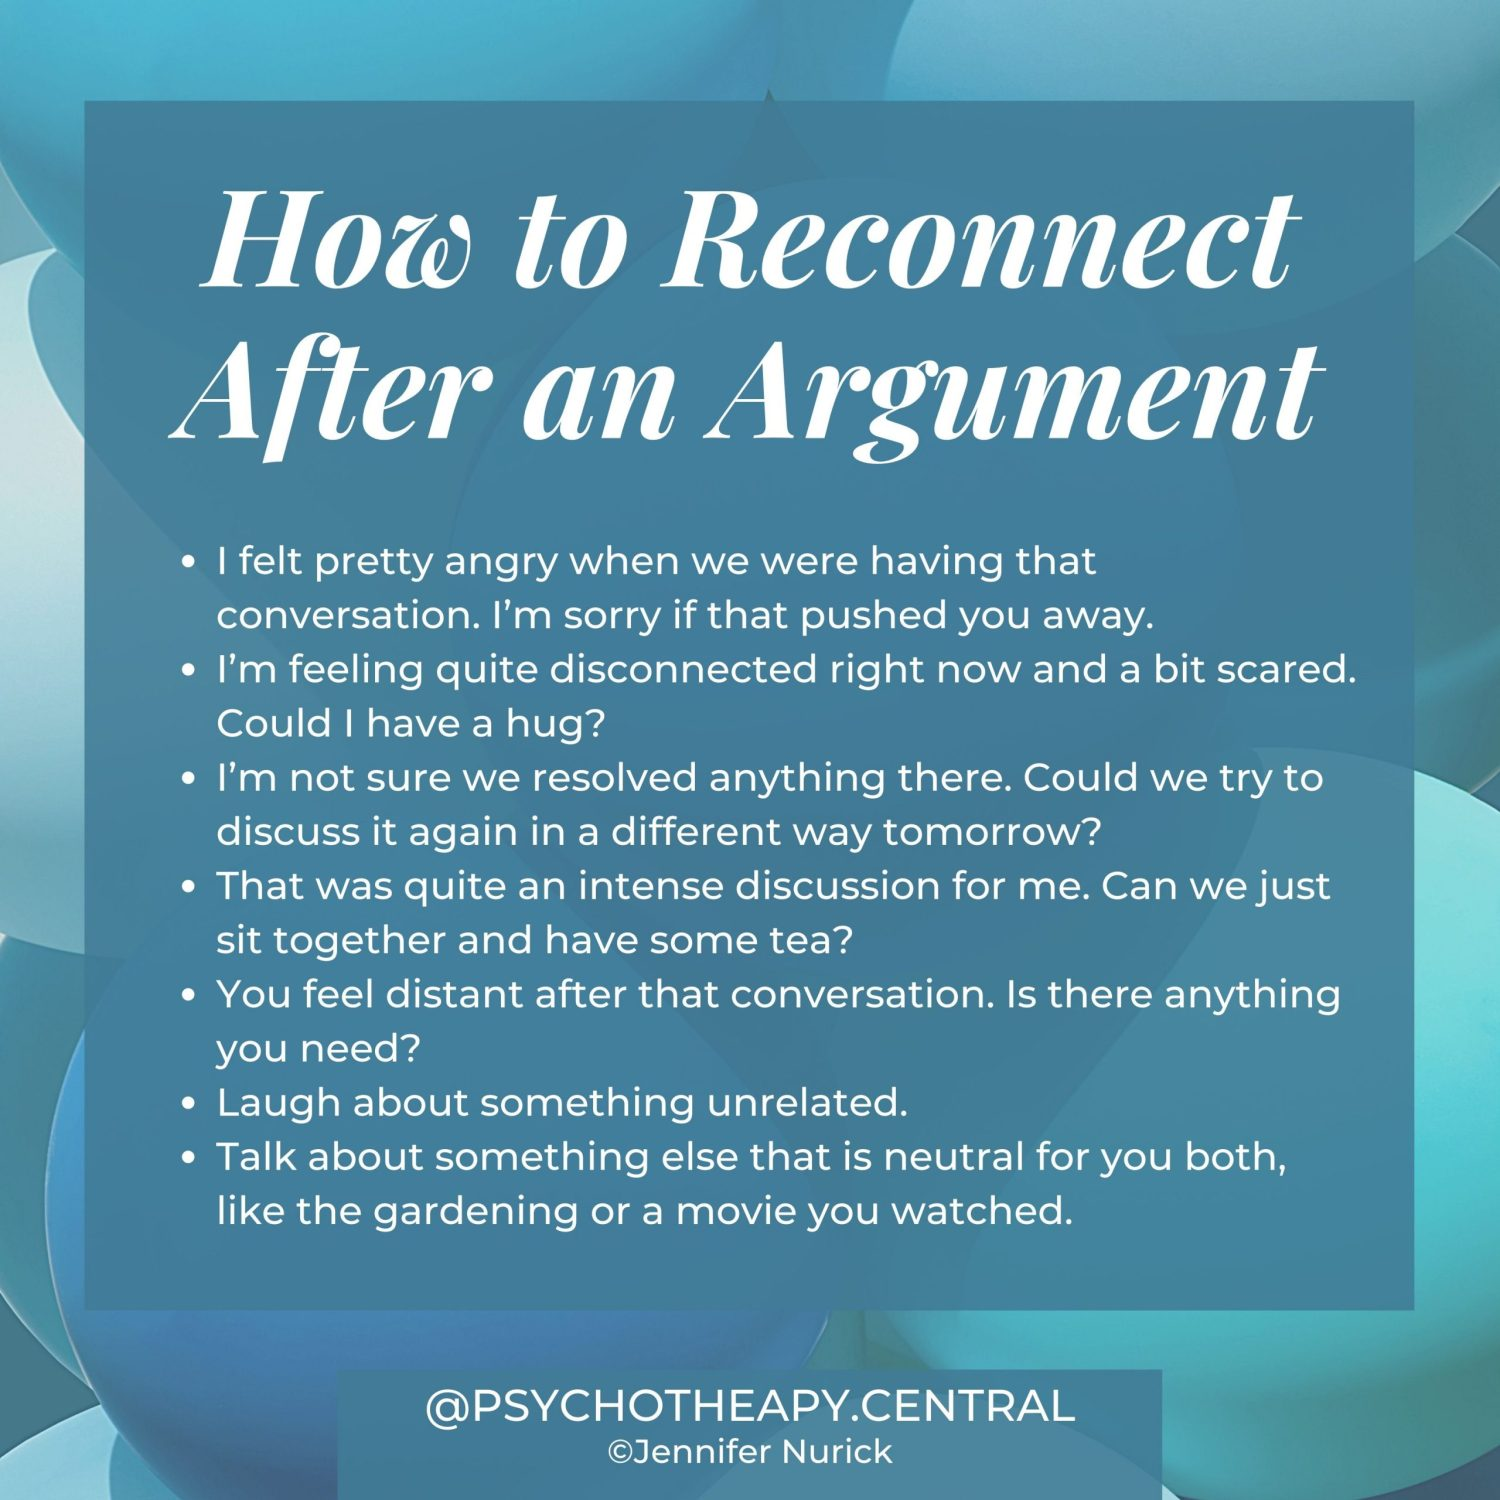 How to Reconnect After an Argument I felt pretty angry when we were having that conversation. I'm sorry if that pushed you away. I'm feeling quite disconnected right now and a bit scared. Could I have a hug? I'm not sure we resolved anything there. Could we try to discuss it again in a different way tomorrow? That was quite an intense discussion for me. Can we just sit together and have some tea? You feel distant after that conversation. Is there anything you need? Laugh about something unrelated. Talk about something else that is neutral for you both, like the gardening or a movie you watched.